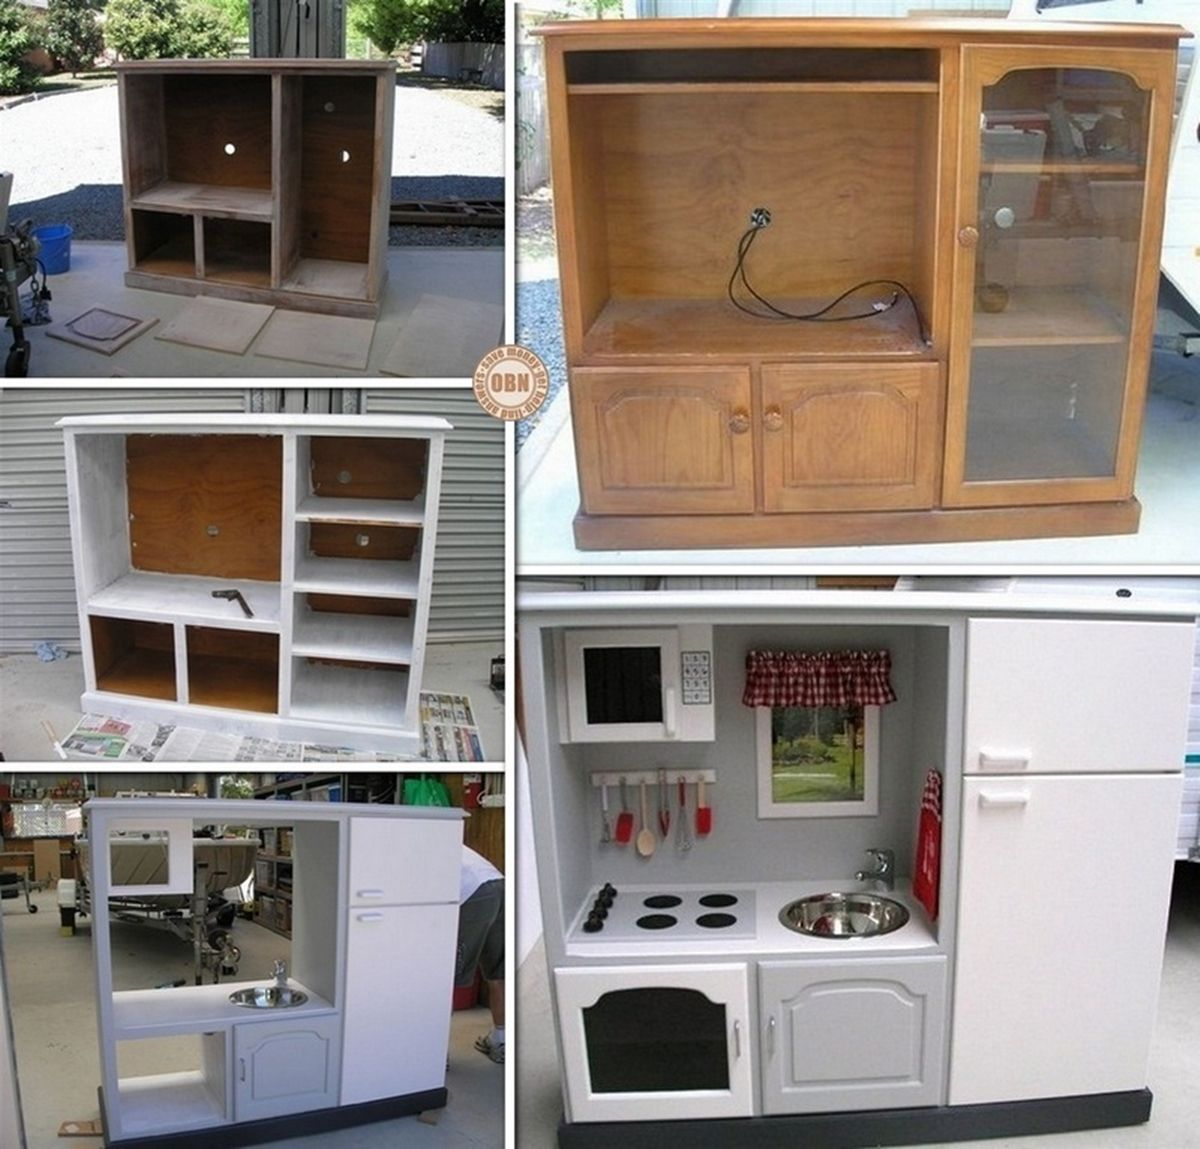 Play Kitchen Diy Projects From Tv Cabinets Diy Play Kitchen Diy Kids Kitchen Kids Play Kitchen